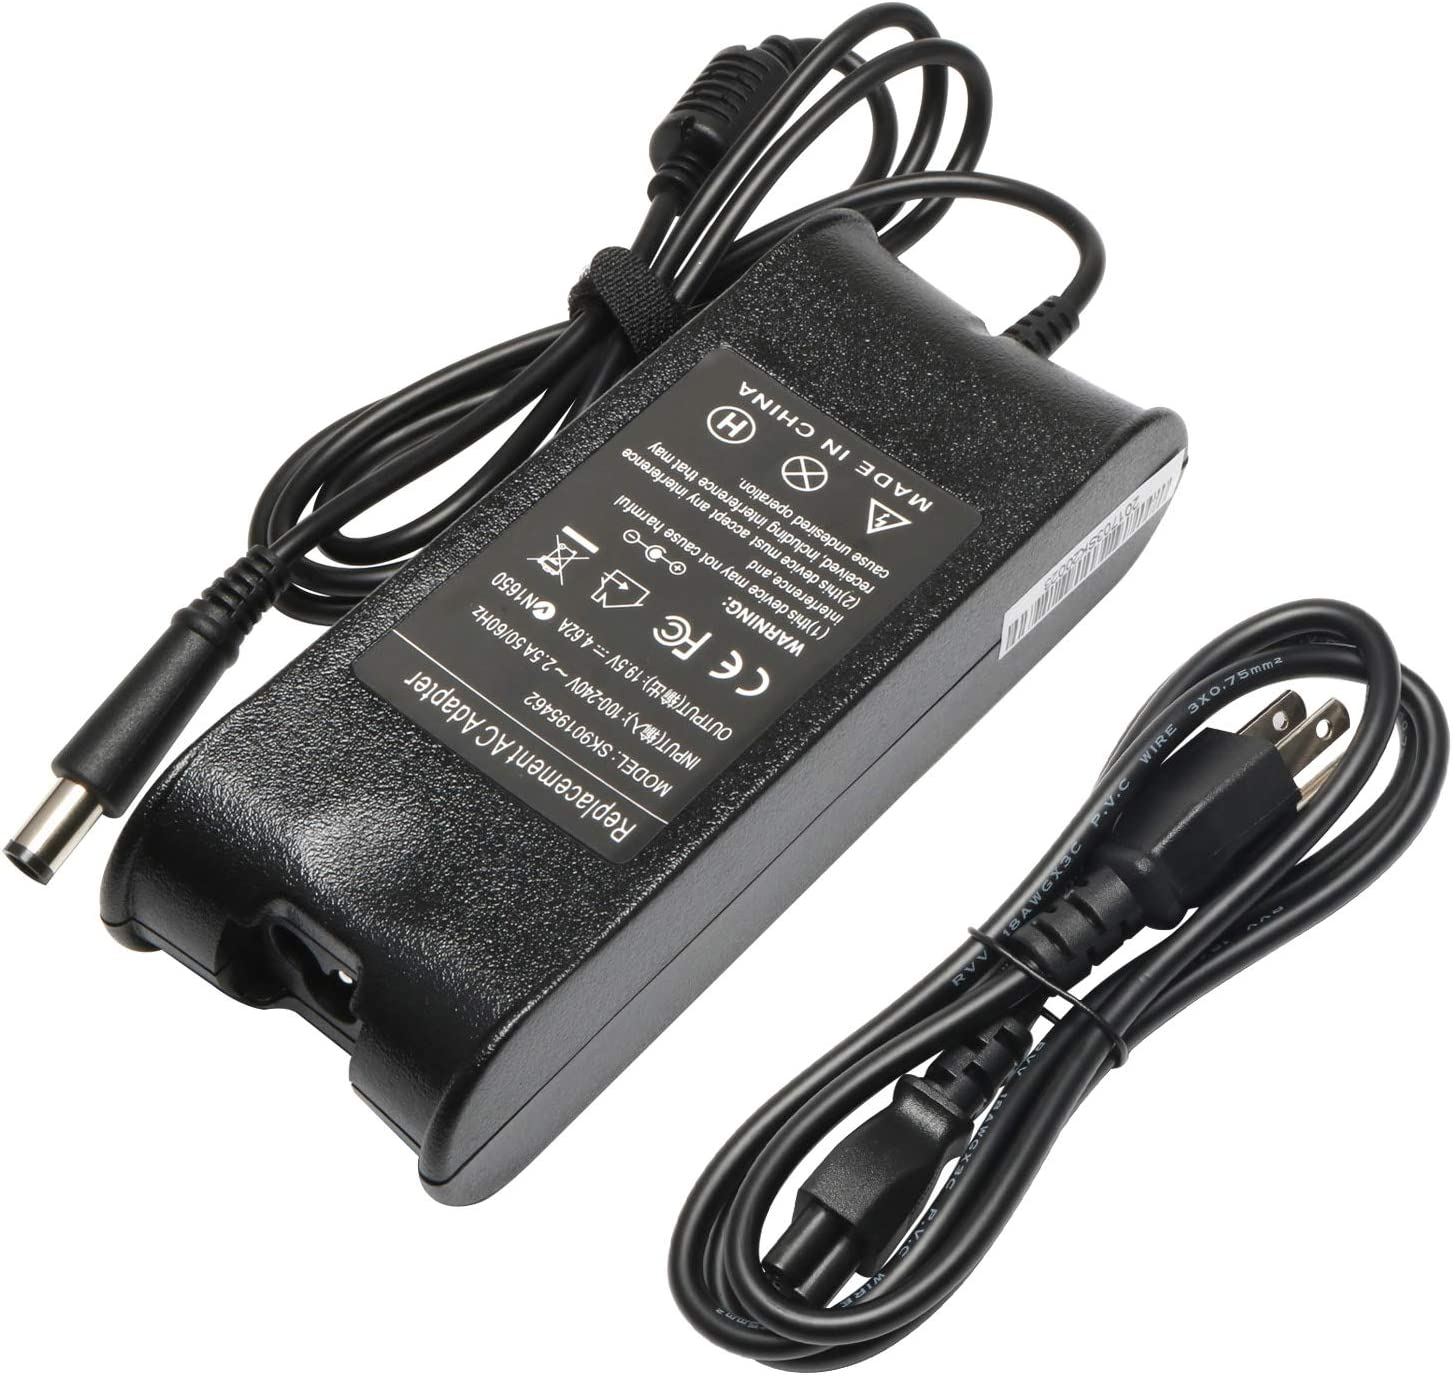 19.5V 4.62A 90W Laptop Adapter Charger for Dell Latitude E5420 E5430 E5450 E6520 E6530 E6230 E7270 E7450 E6500 E6430 E7470 E6400 E5520 E7440 E7240 E6440 E4310 AC Power Supply Cord